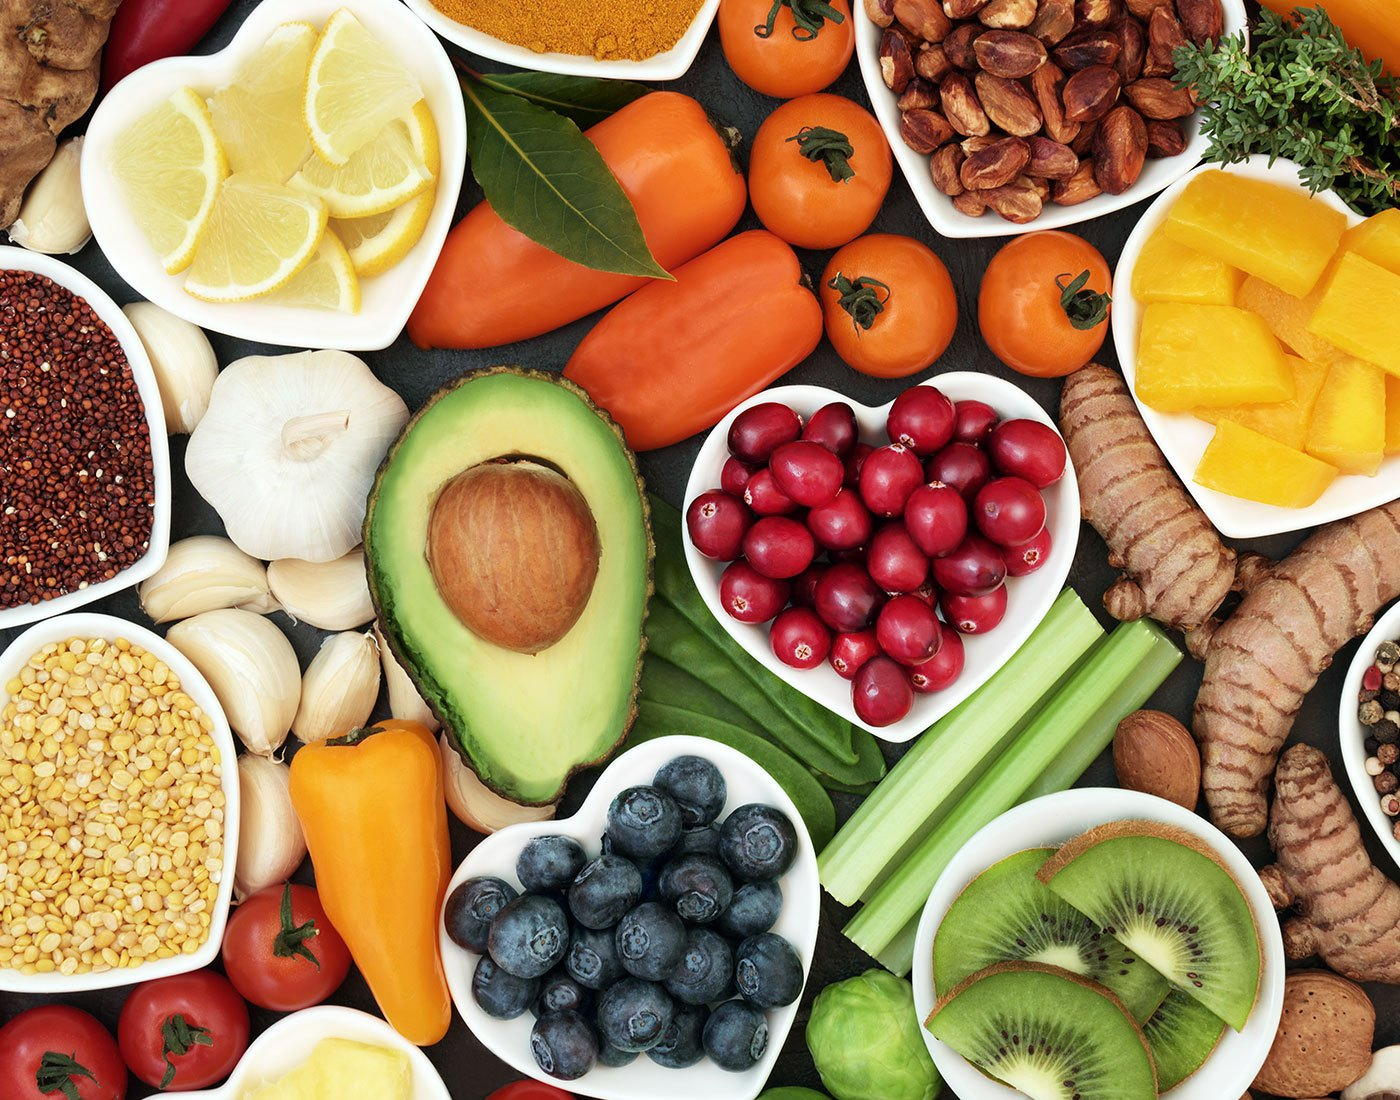 Eat your heart out: tips for heart-healthy eating